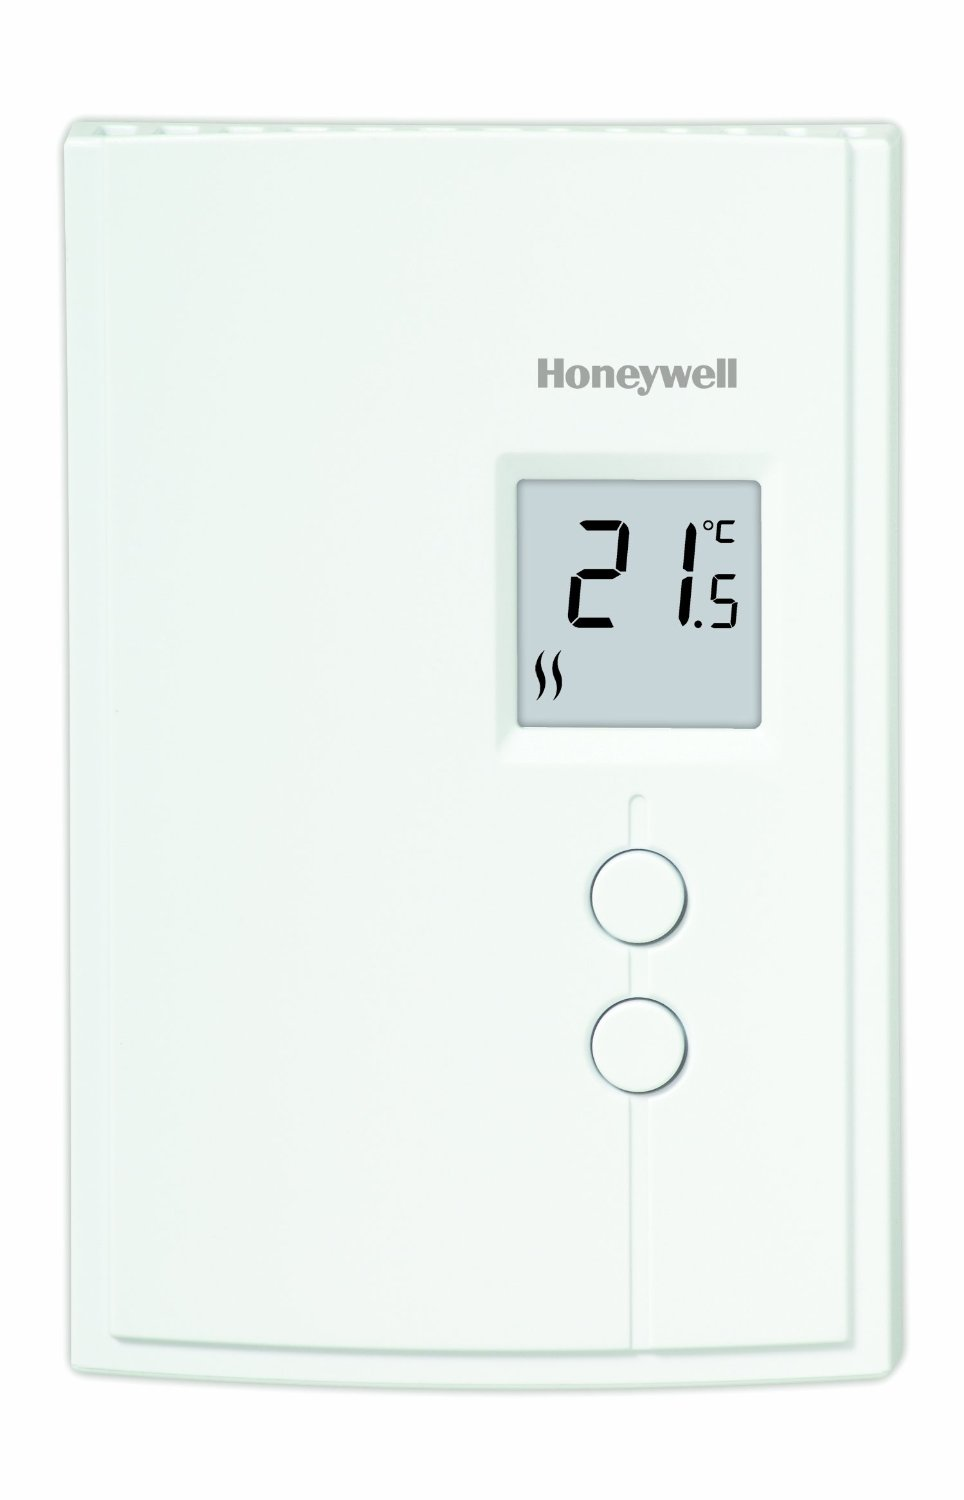 thermostat reviews and buying guide